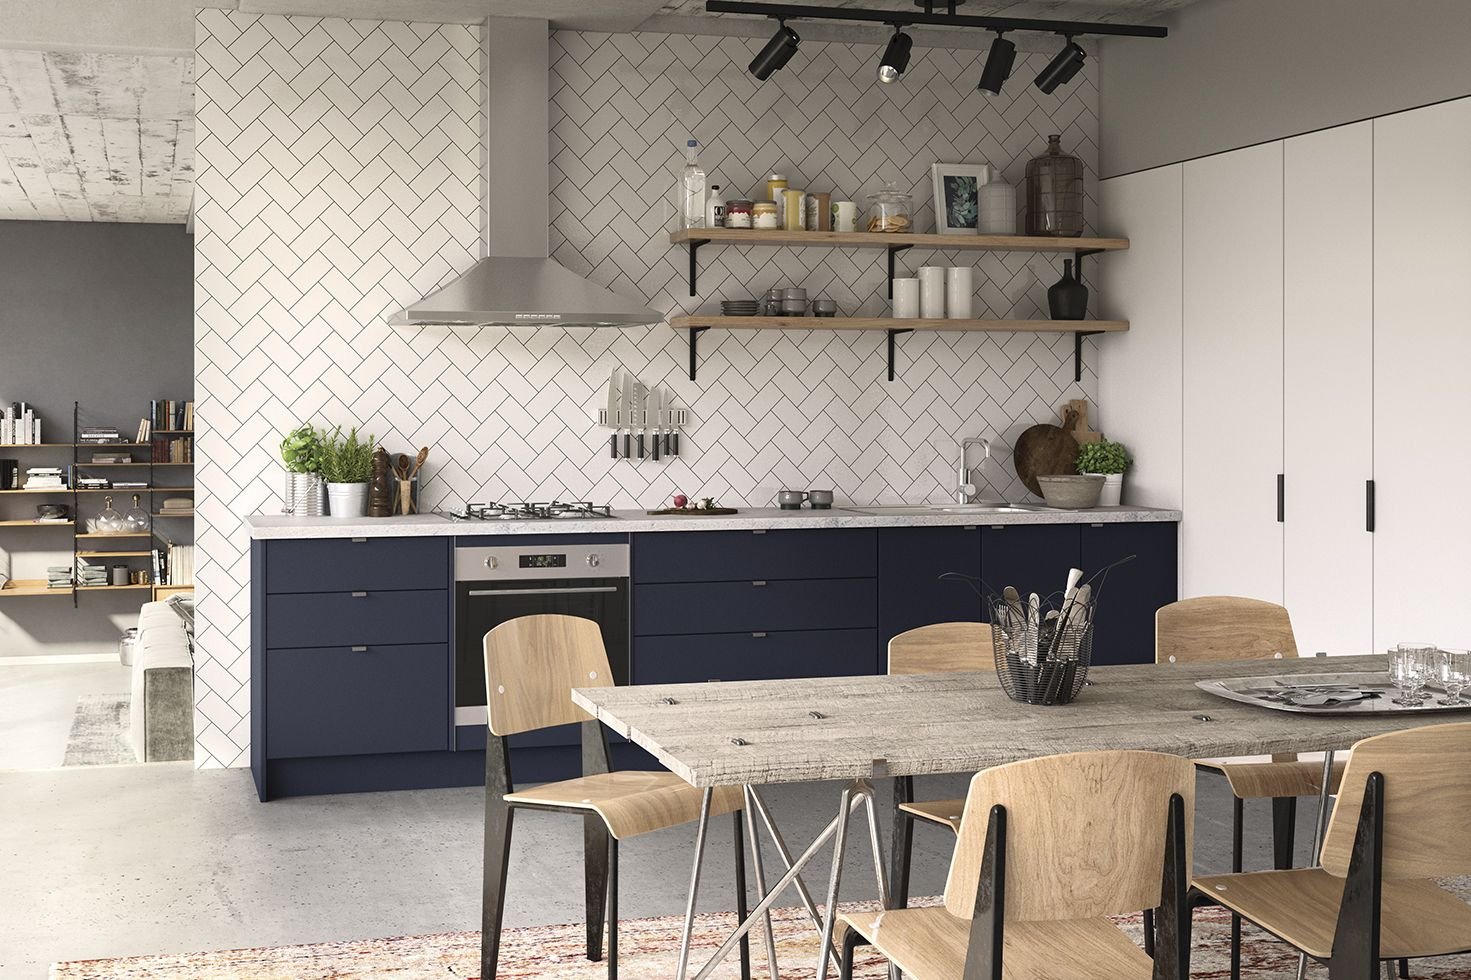 warehouse apartment kitchen inspiration for more pics check out